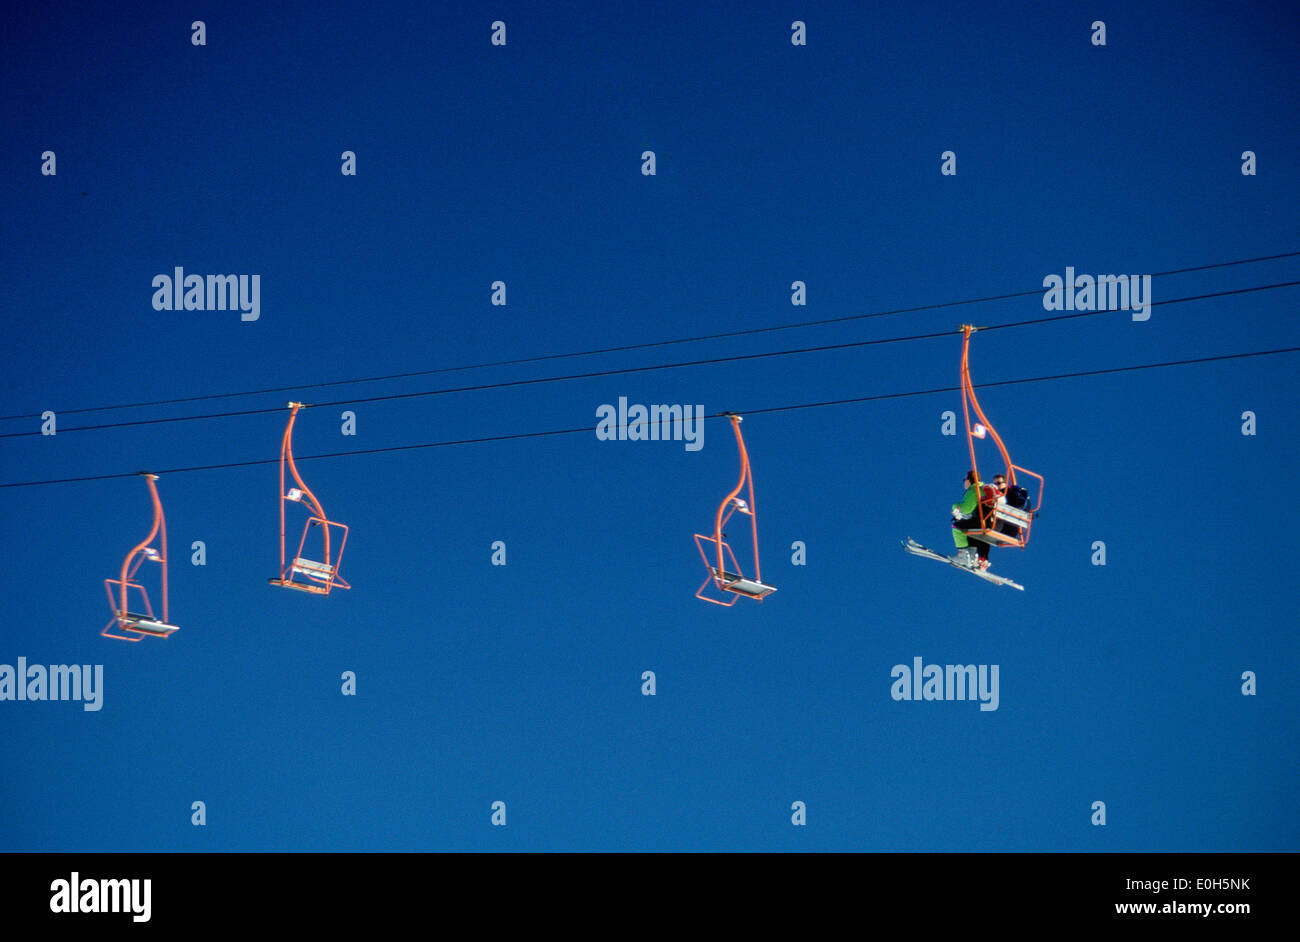 Chairlift at a ski resort - Stock Image